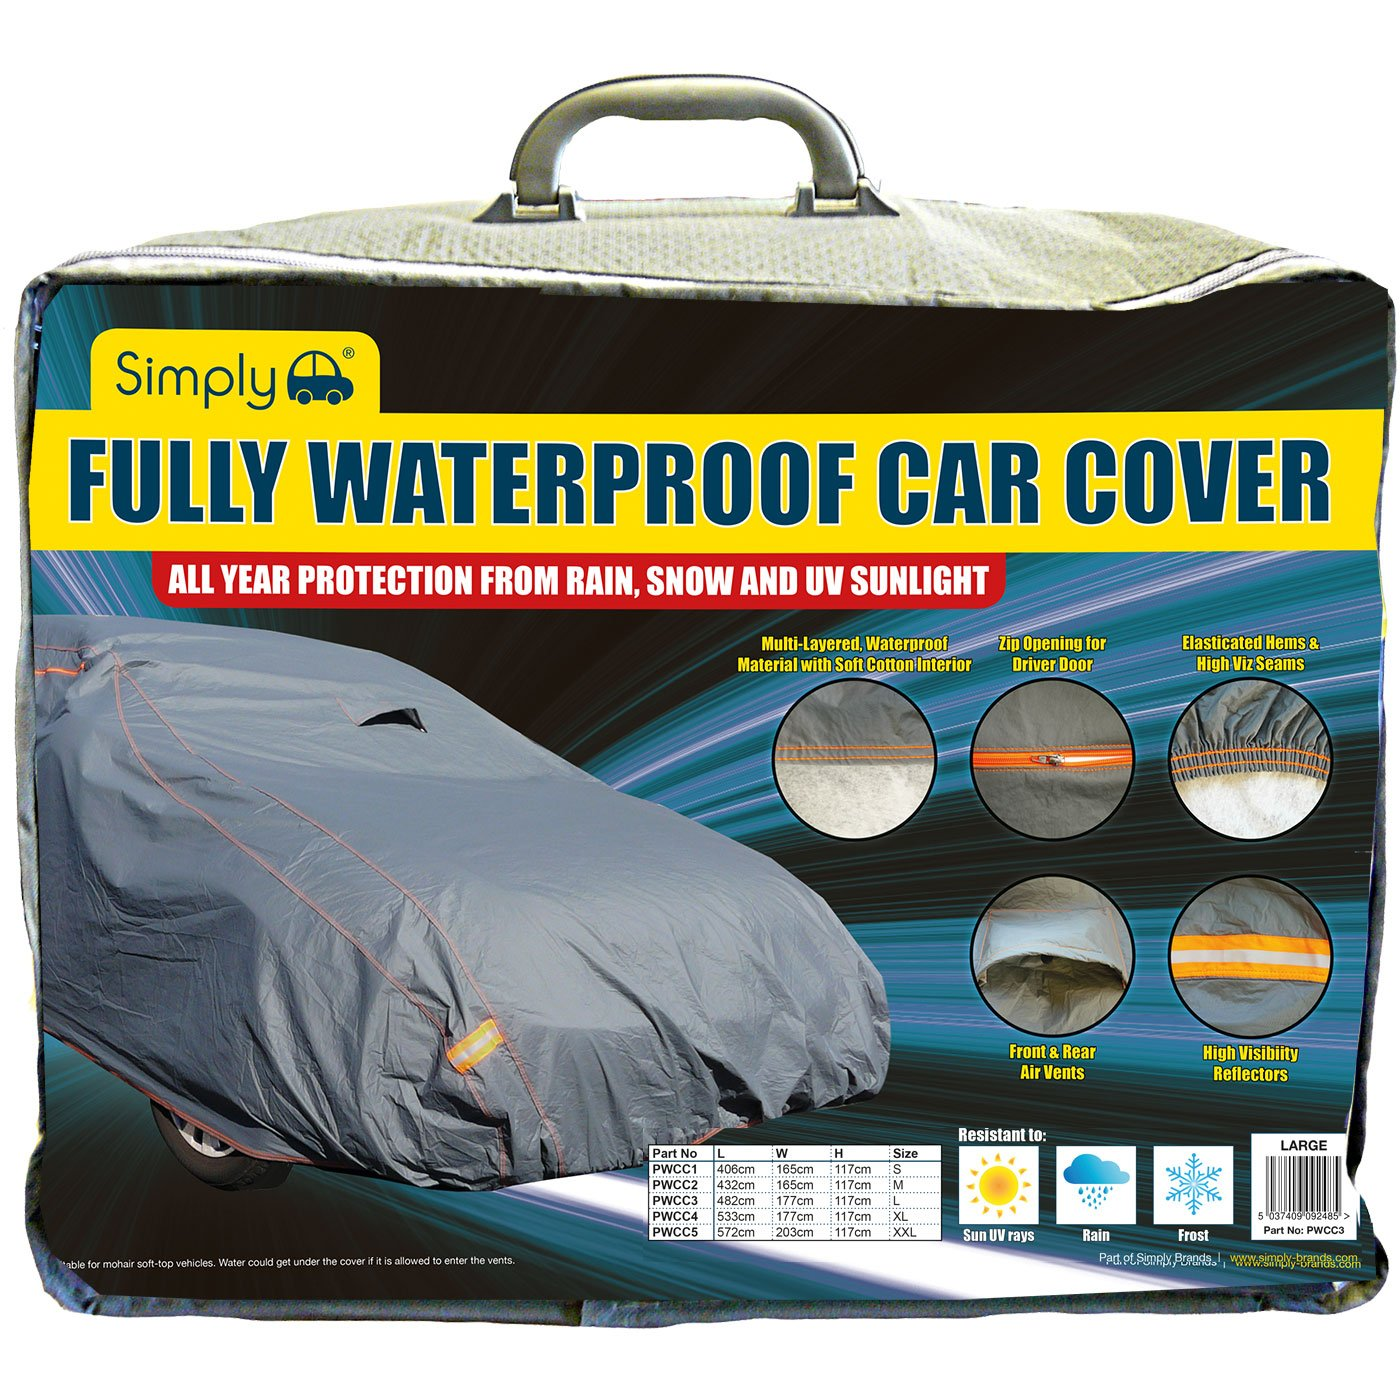 VW Passat Simply PWCC3 Large Fully Waterproof Car Cover BMW 3 Series Ford Mondeo